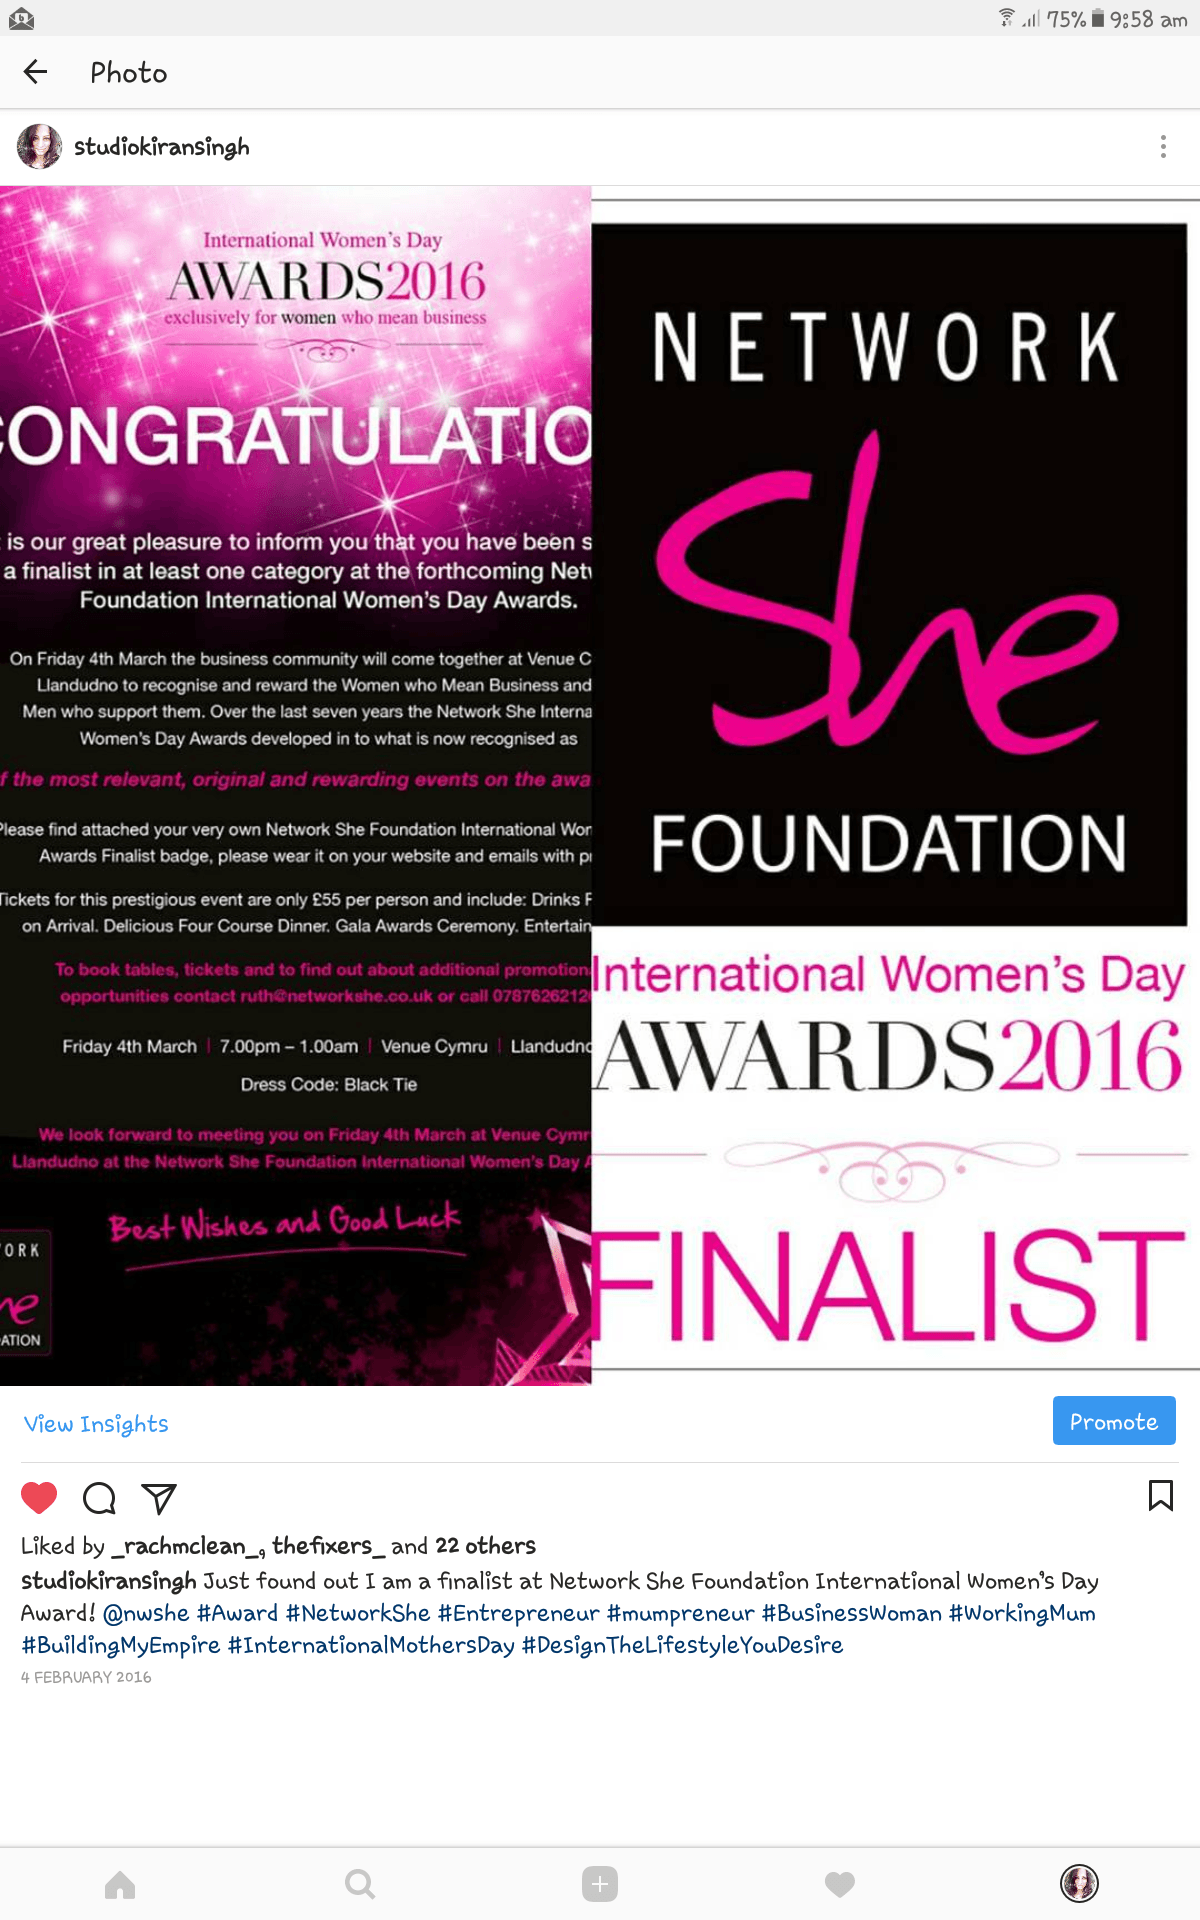 Network-She-Foundation-As-seen-in